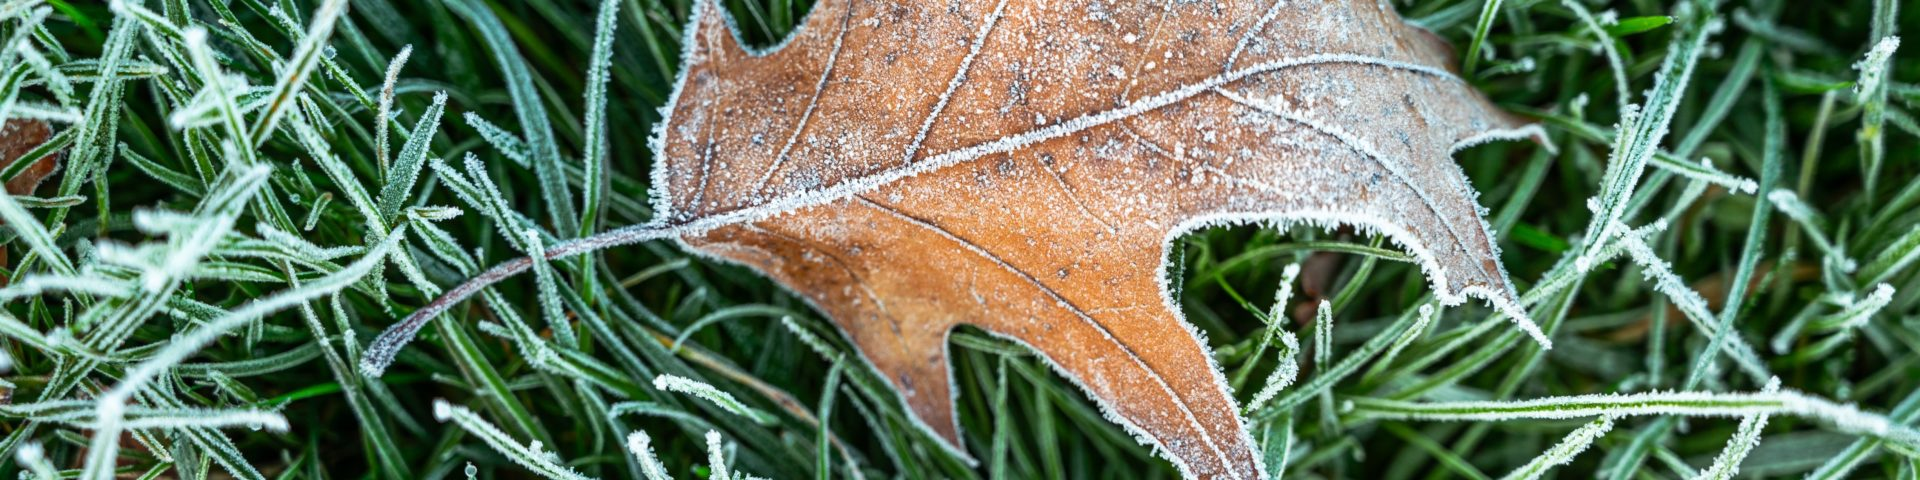 Frost-covered grass and leaf